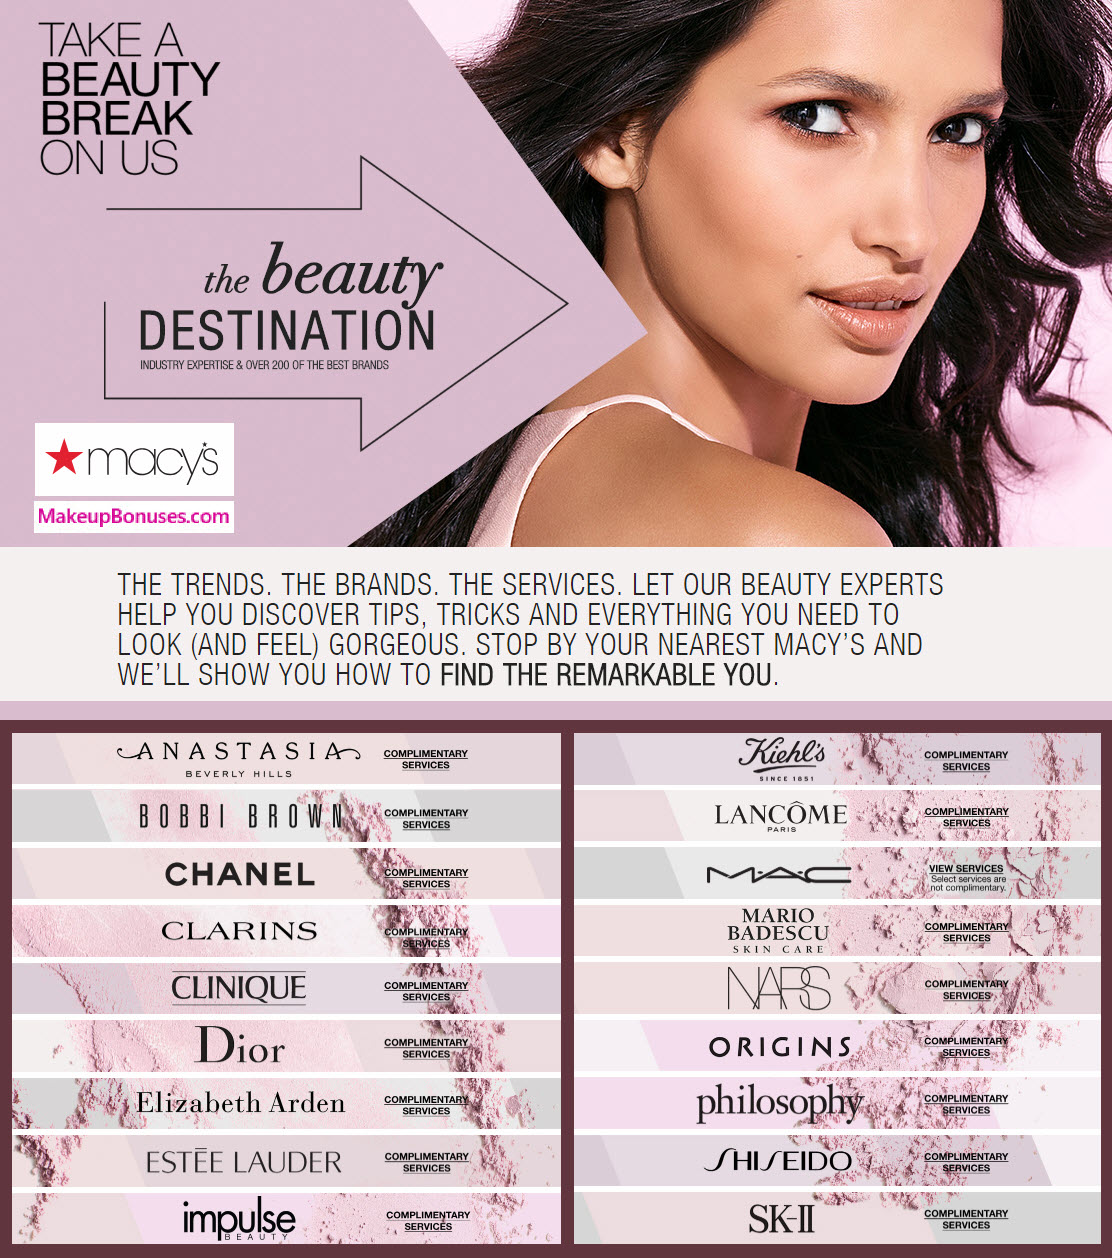 Macy's Free Beauty Services - MakeupBonuses.com